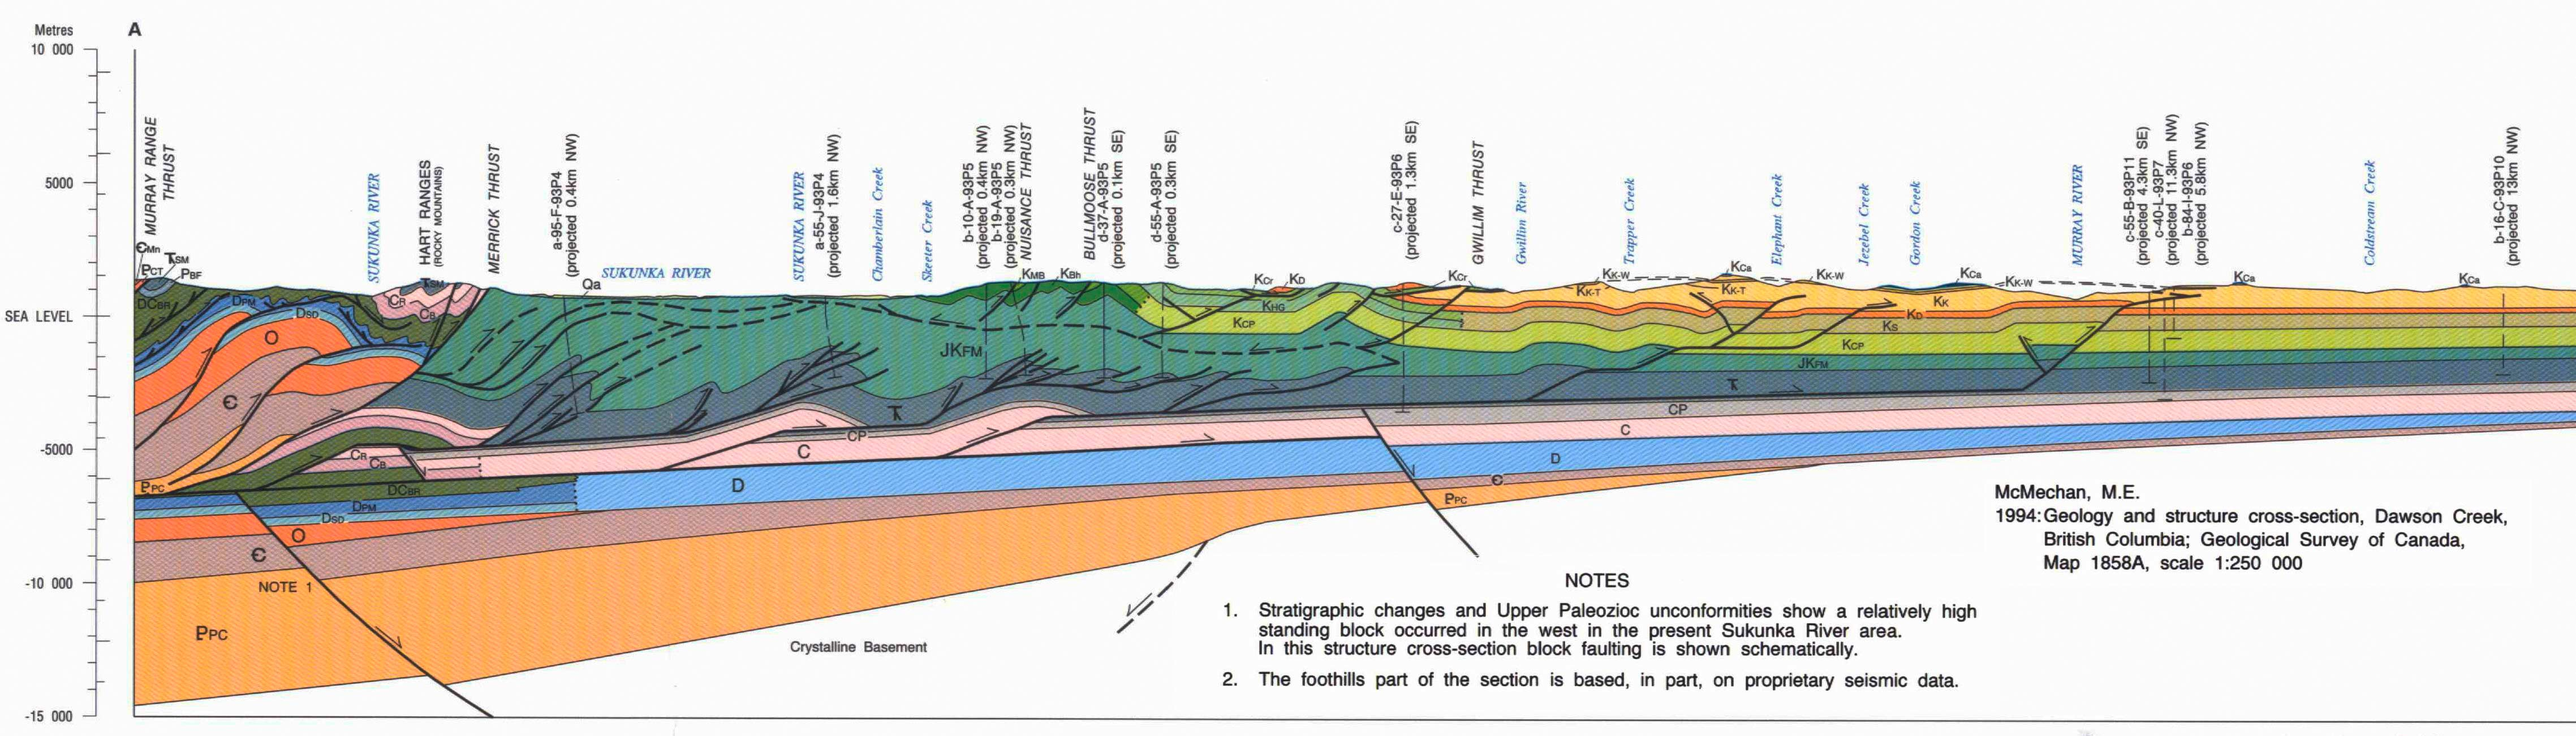 Geopark Geology Tumbler Ridge Global Geologic Block Diagram Youngest To Oldest